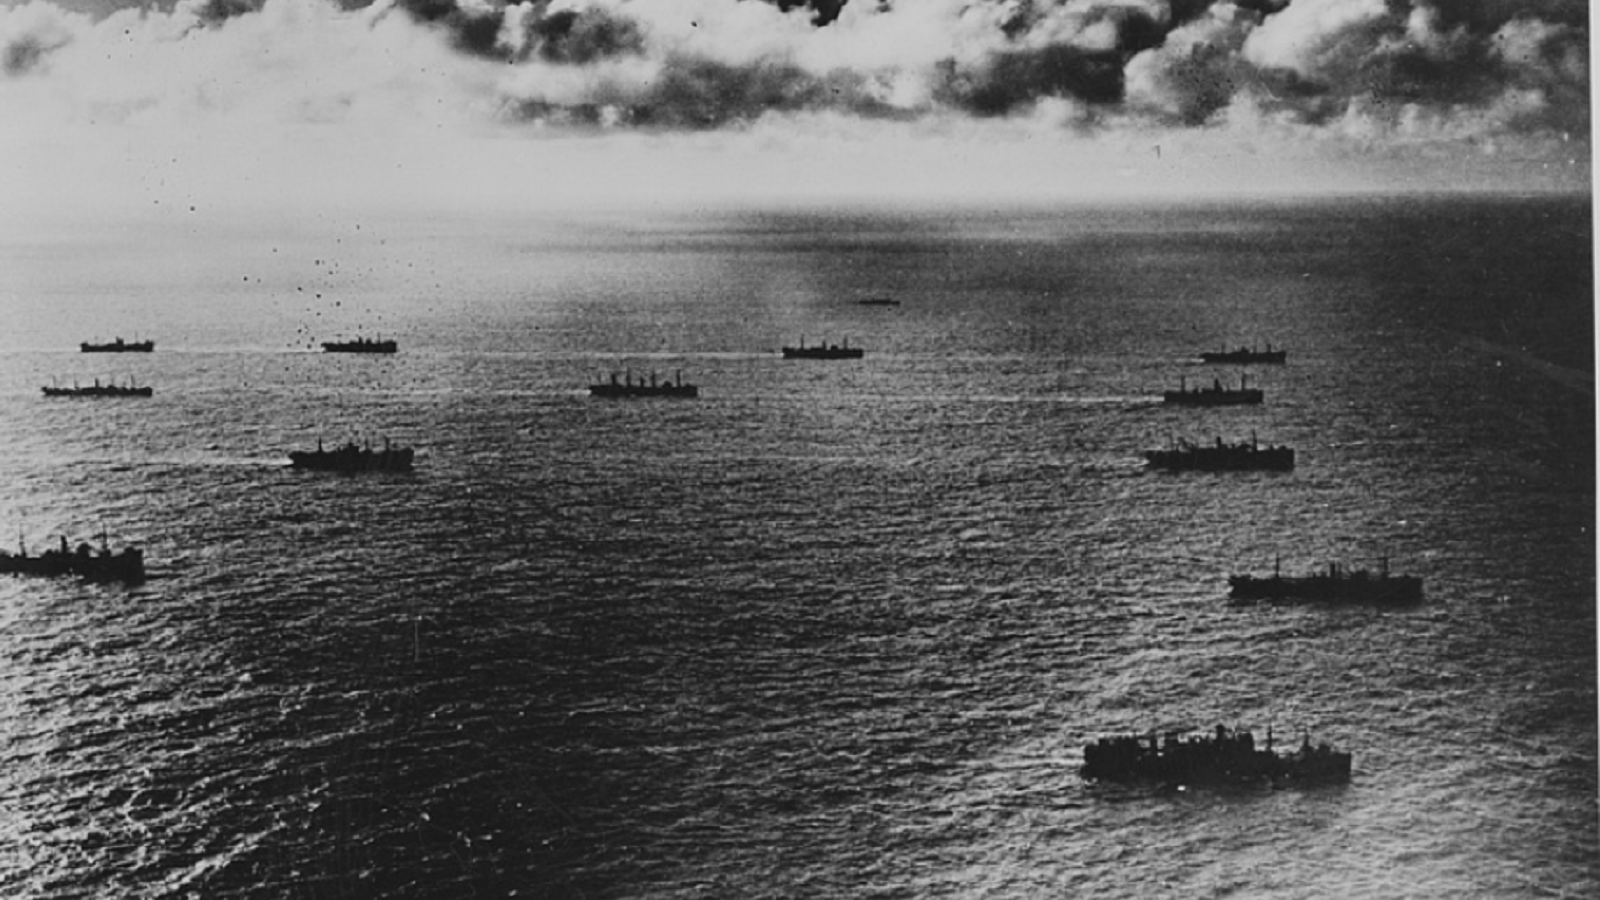 1940s black and white photo depicting several ships on the ocean.